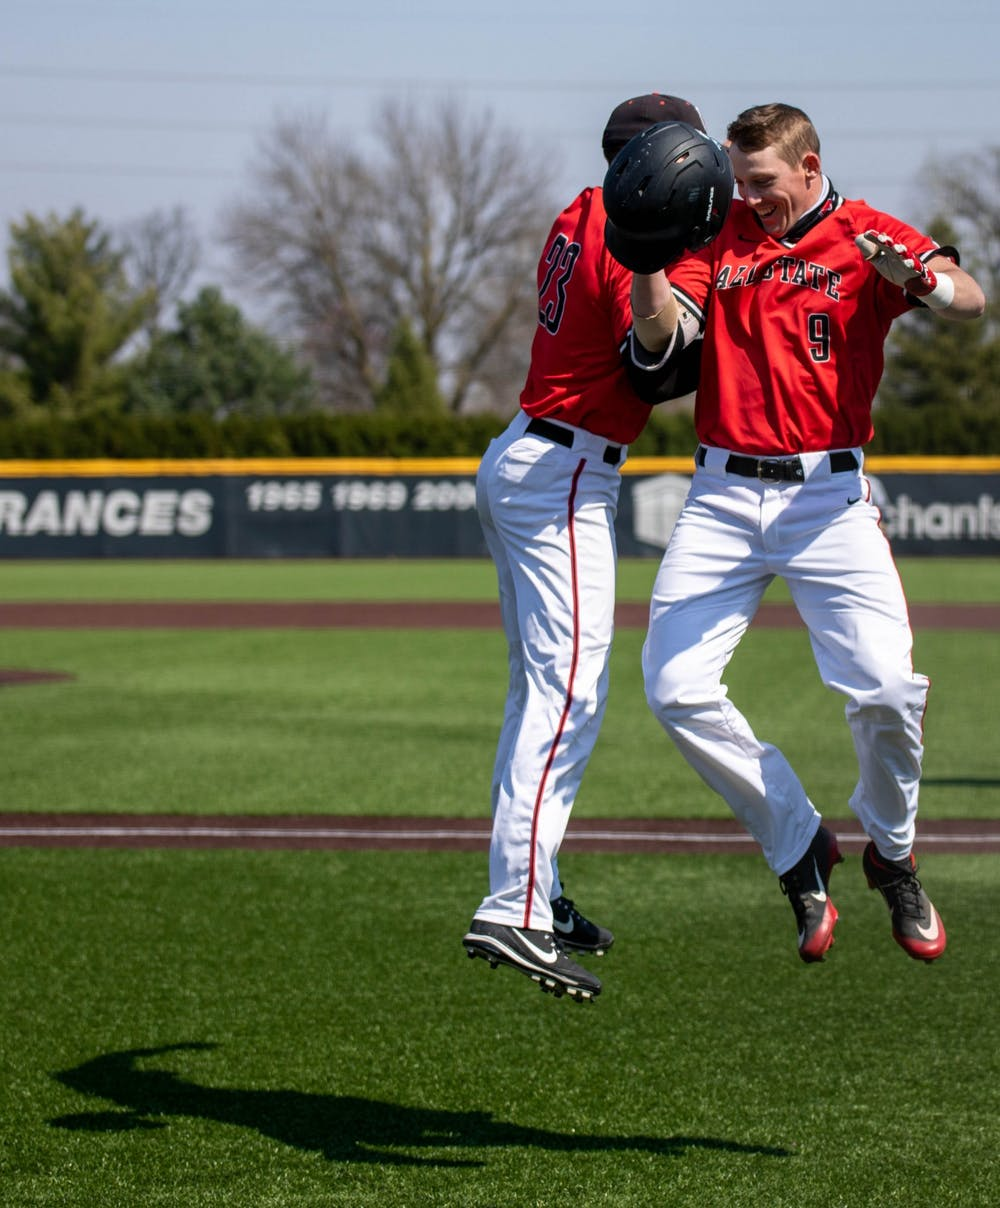 <p>Senior outfielder Ross Messina celebrates with junior outfielder Nick Powell after Powell hit a home run April 3, 2021, at Ball Diamond at First Merchants Ballpark Complex. The Cardinals won their second game of the day 16-10 against the Bulldogs. <strong>Jaden Whiteman, DN</strong></p>